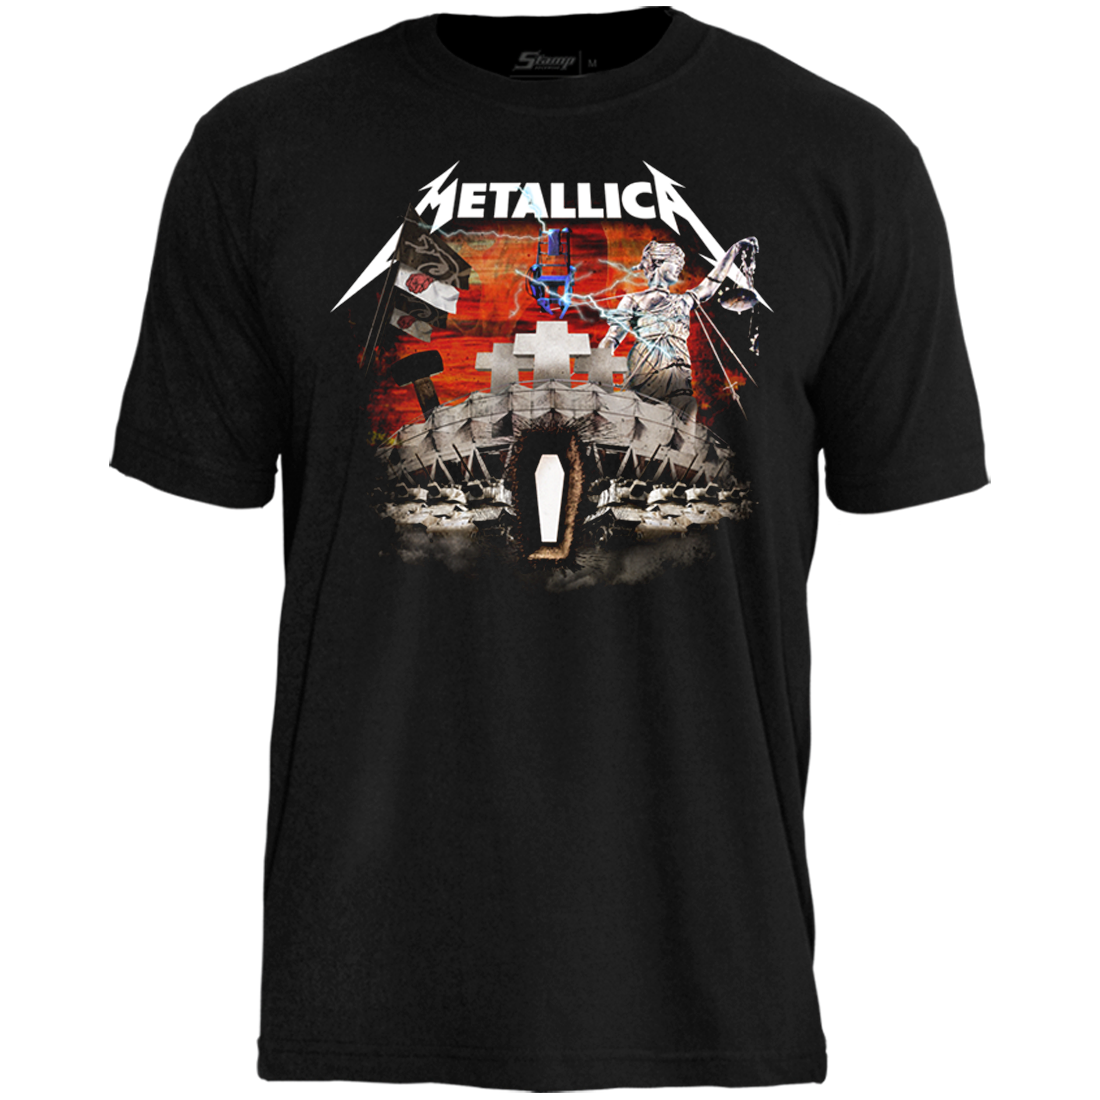 Camiseta Metallica El Arsenal Completo